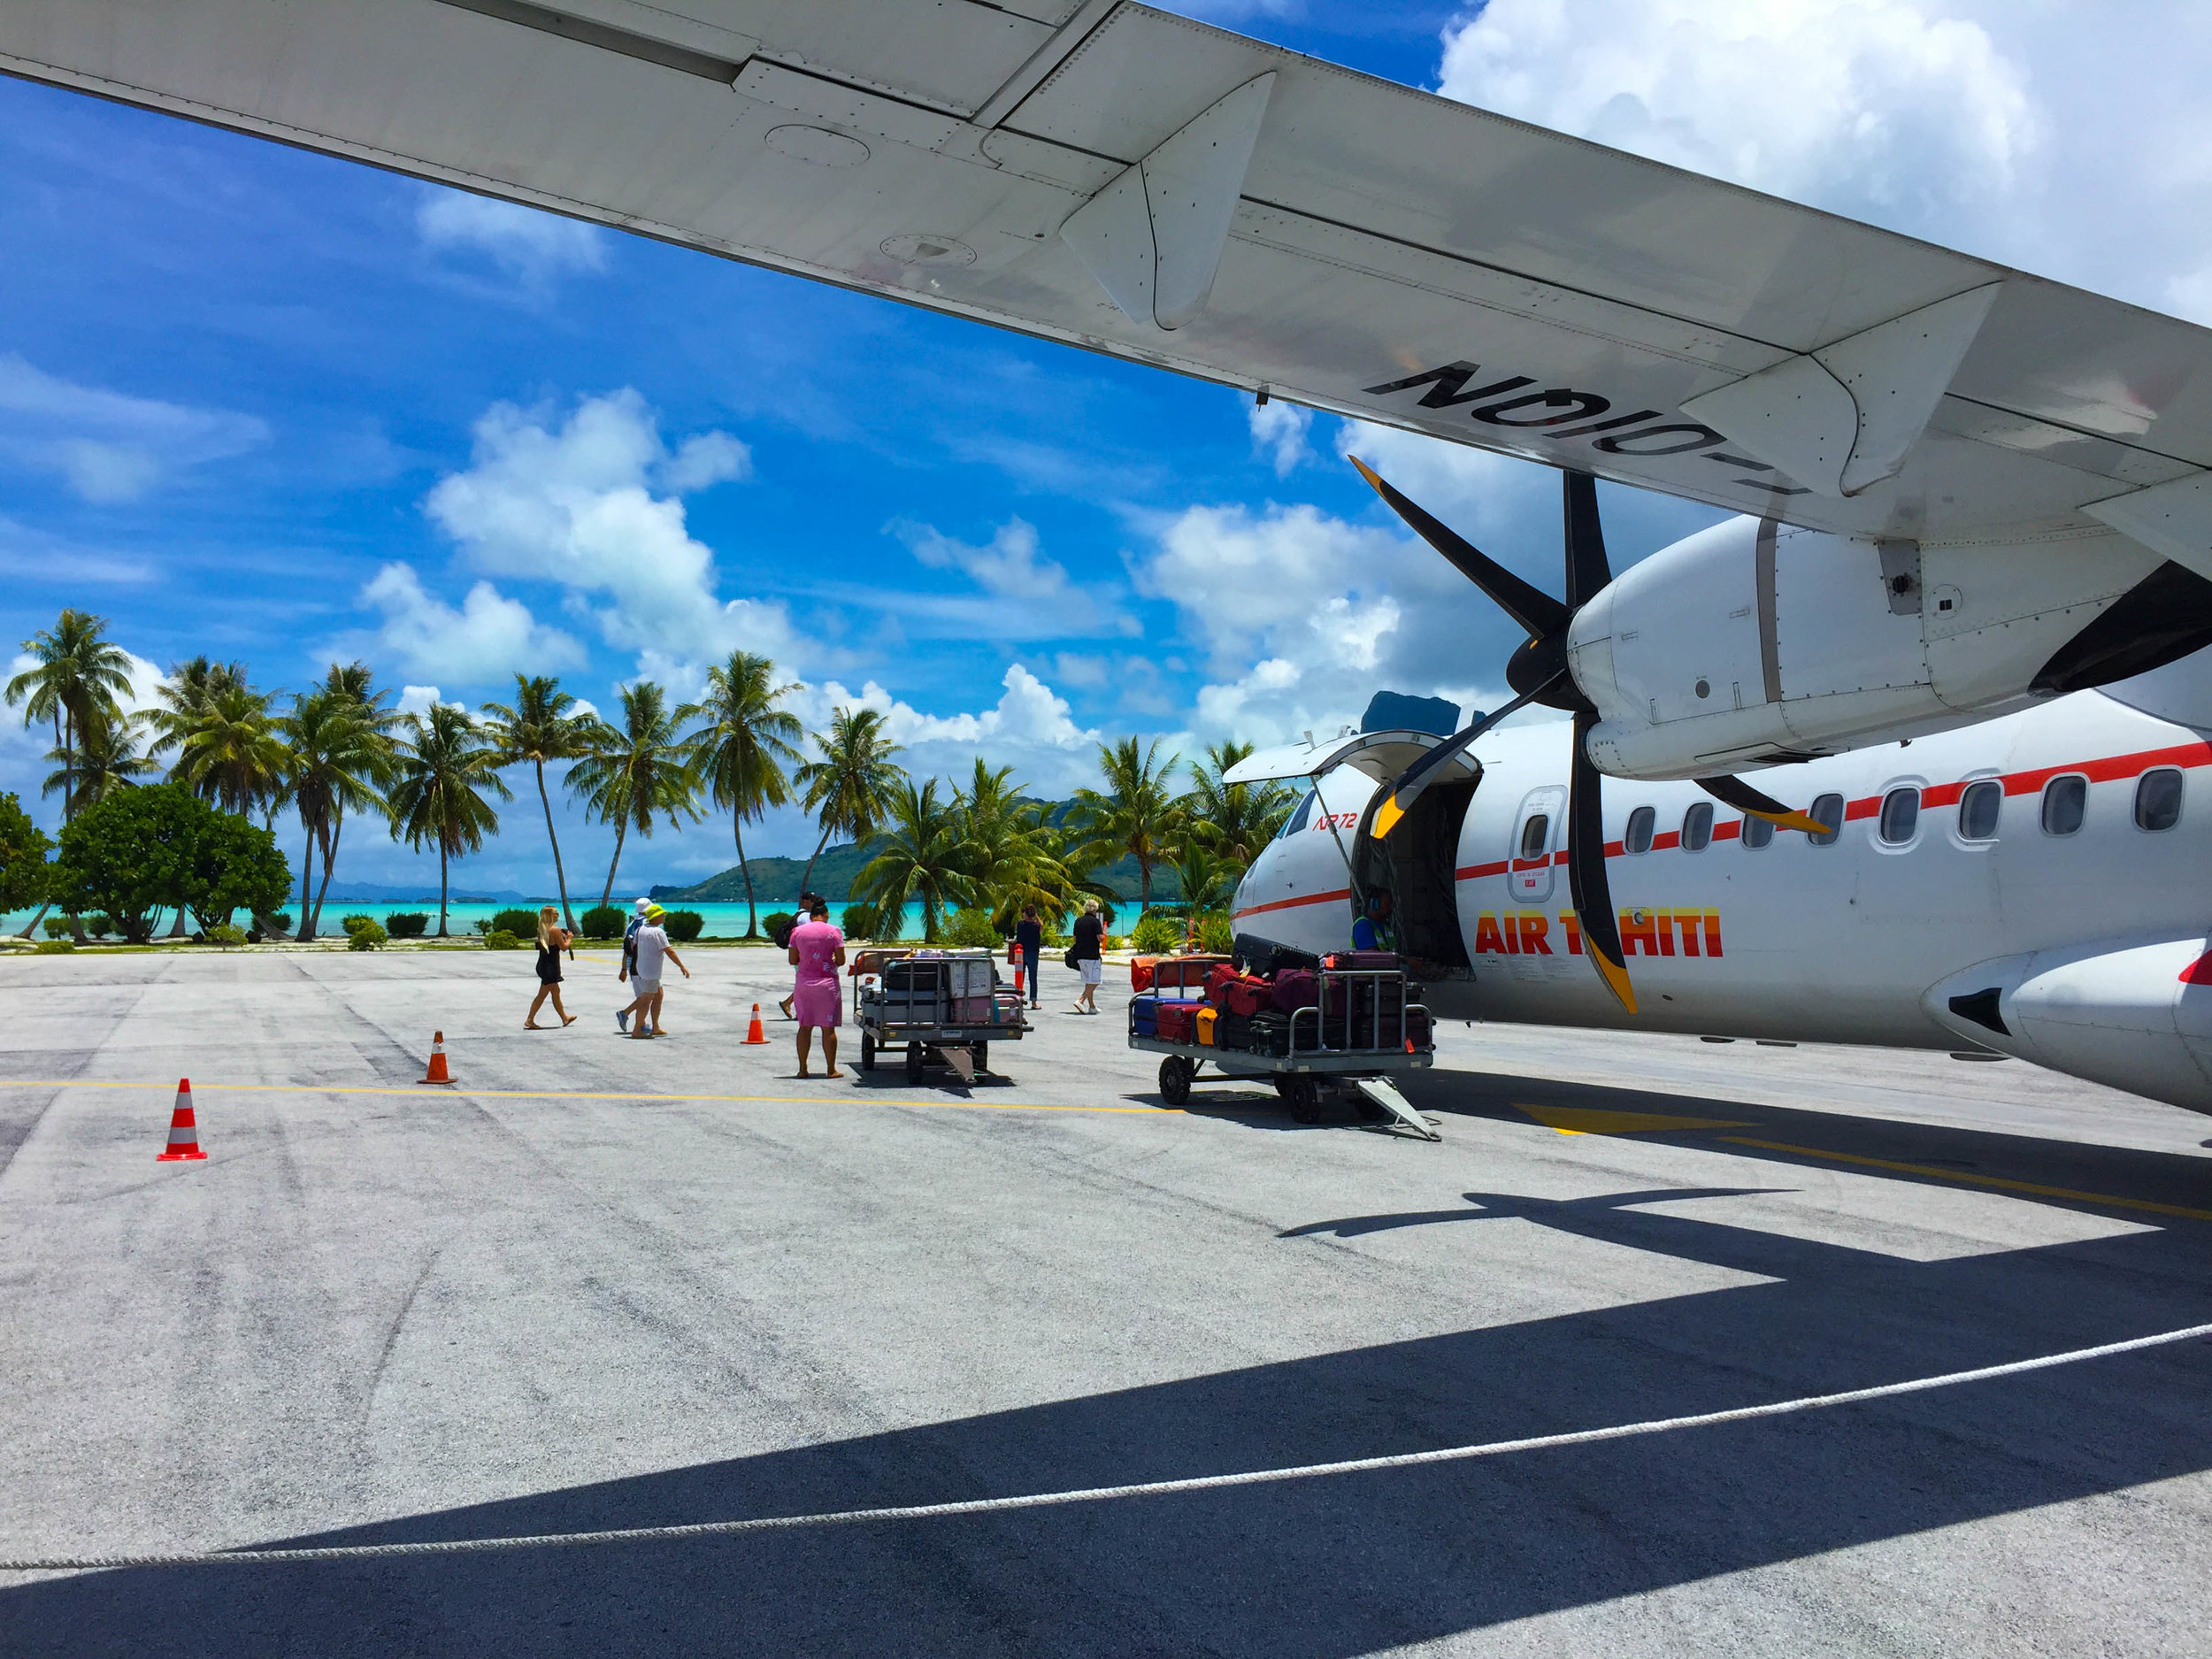 Bora_Bora_Airport_Air_Tahiti